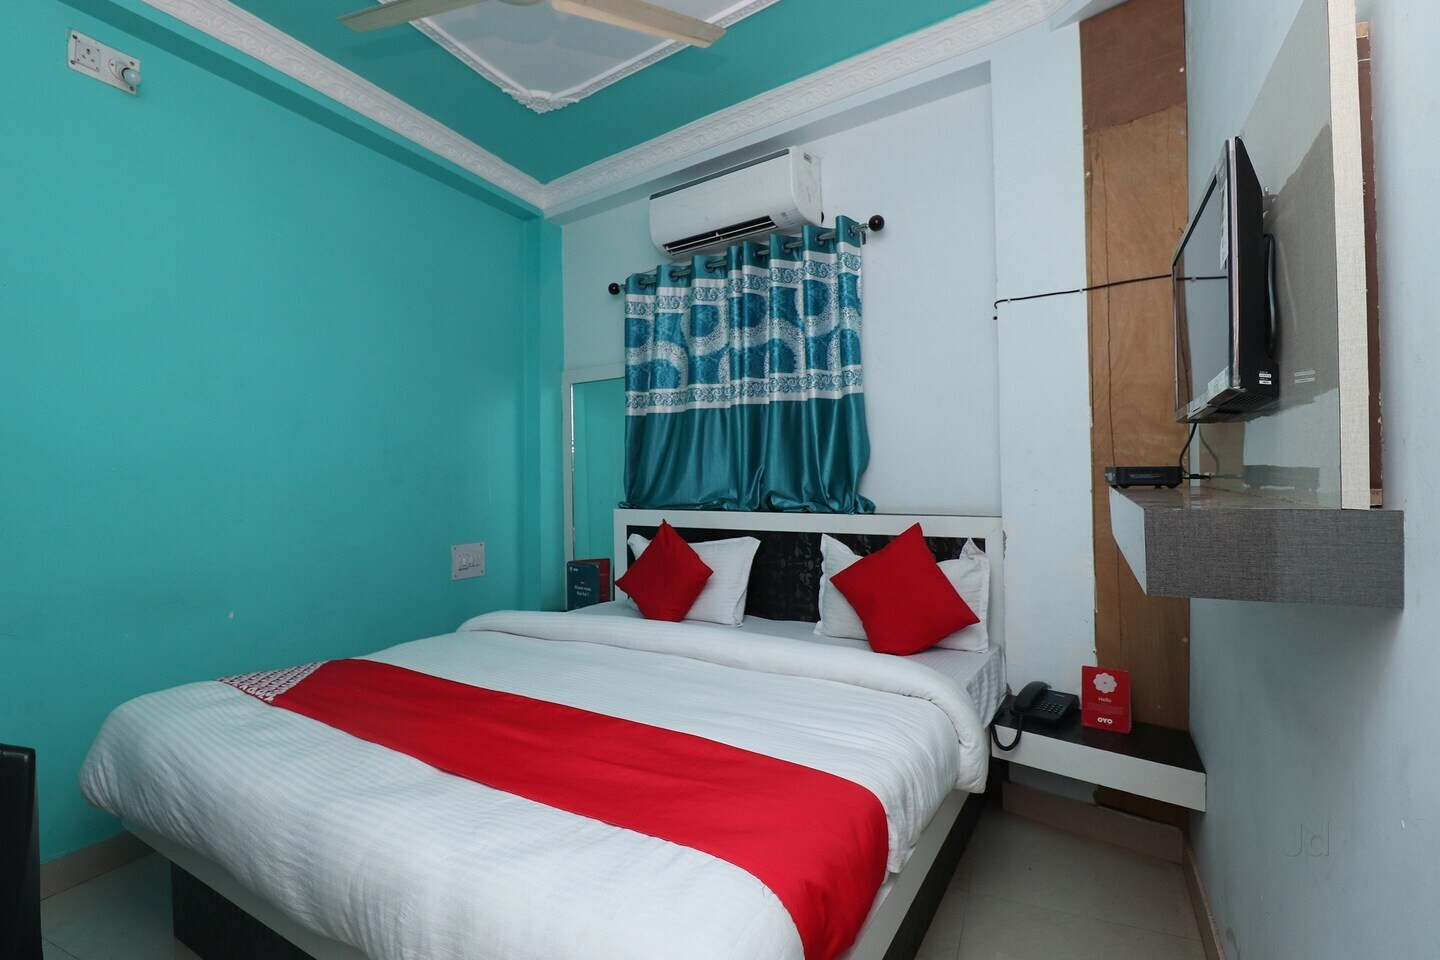 Place To Stay In Rajrappa-Hotel J.B. Palace